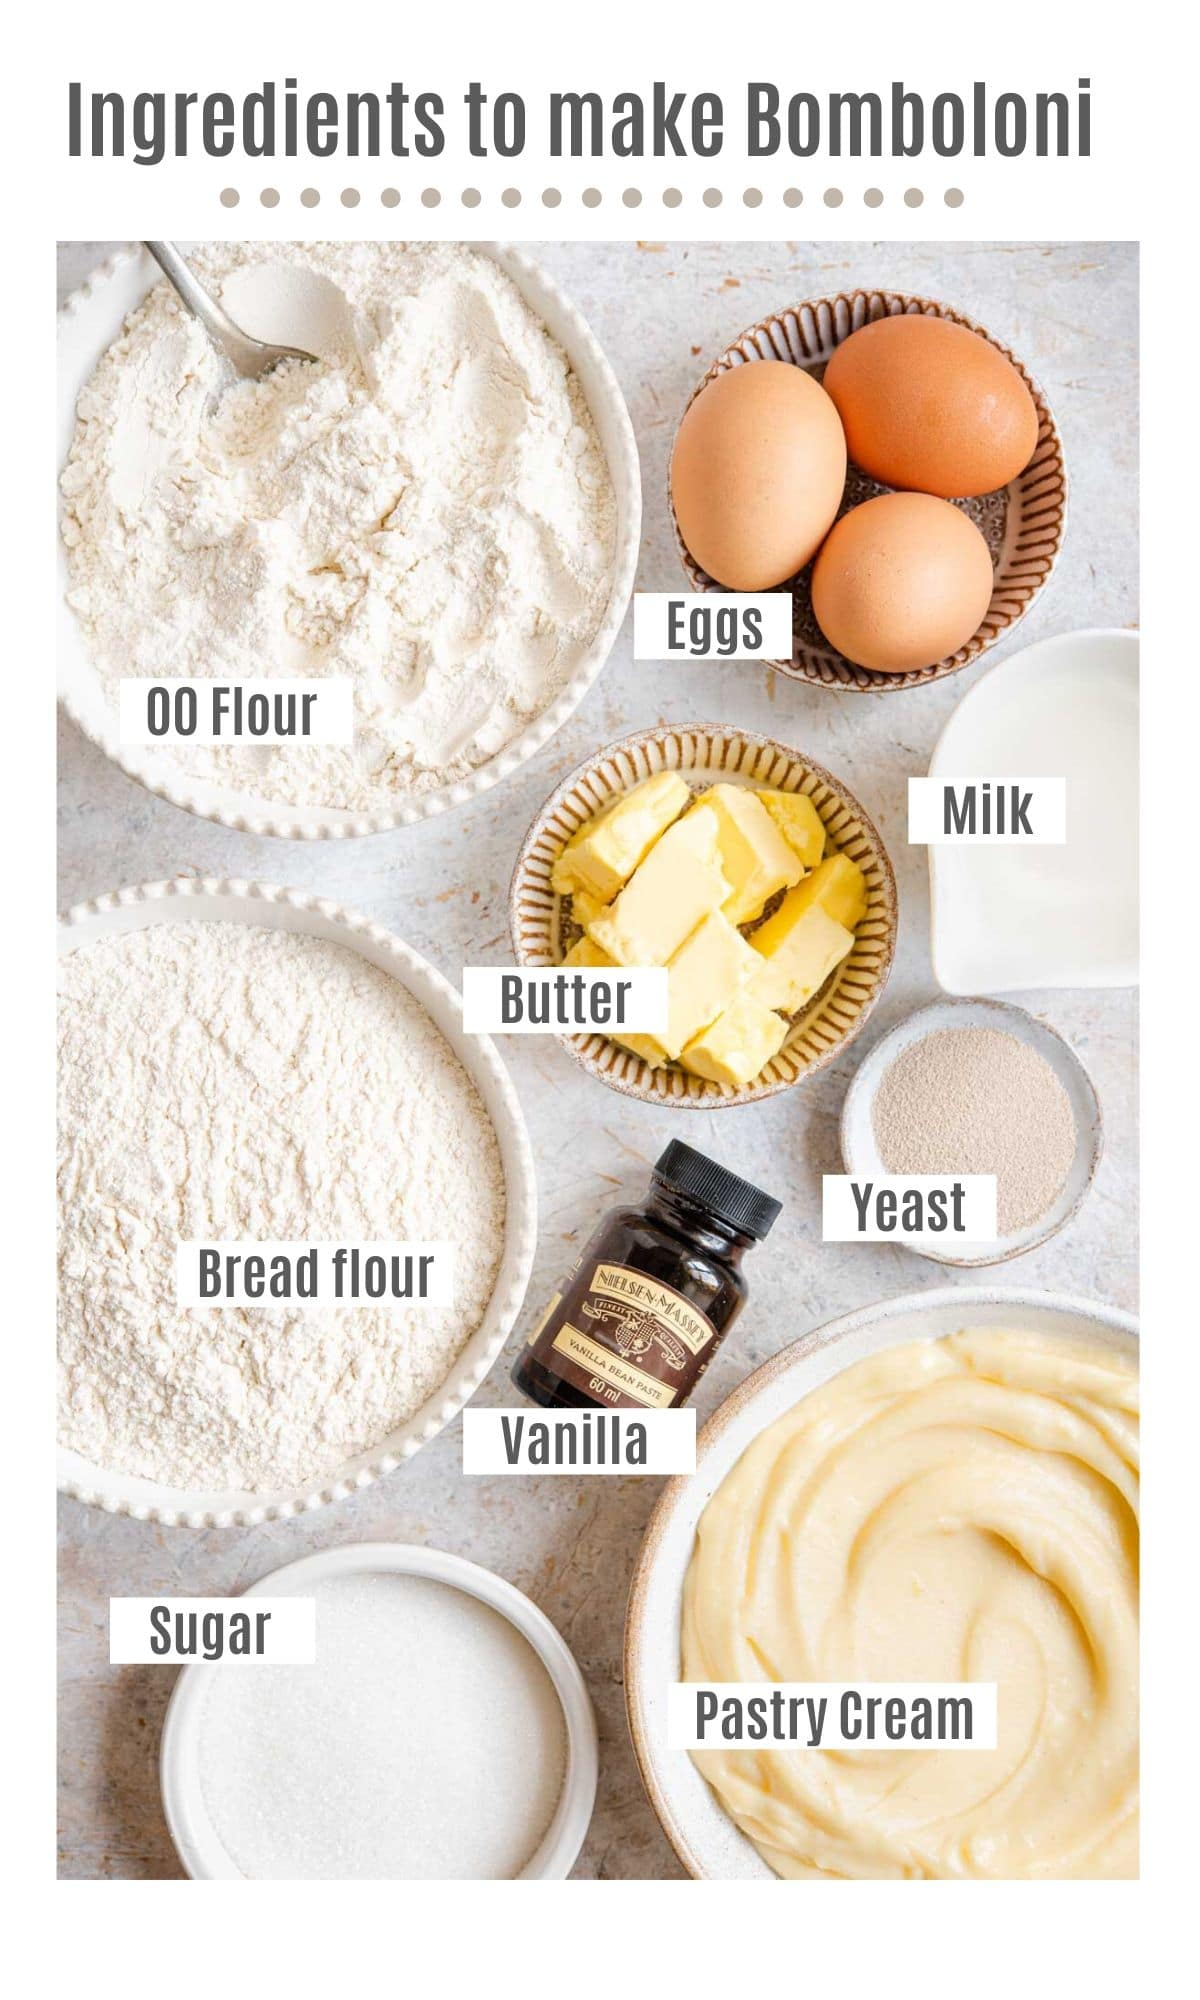 An overhead shot of all the ingredients you need to make Bomboloni doughnuts